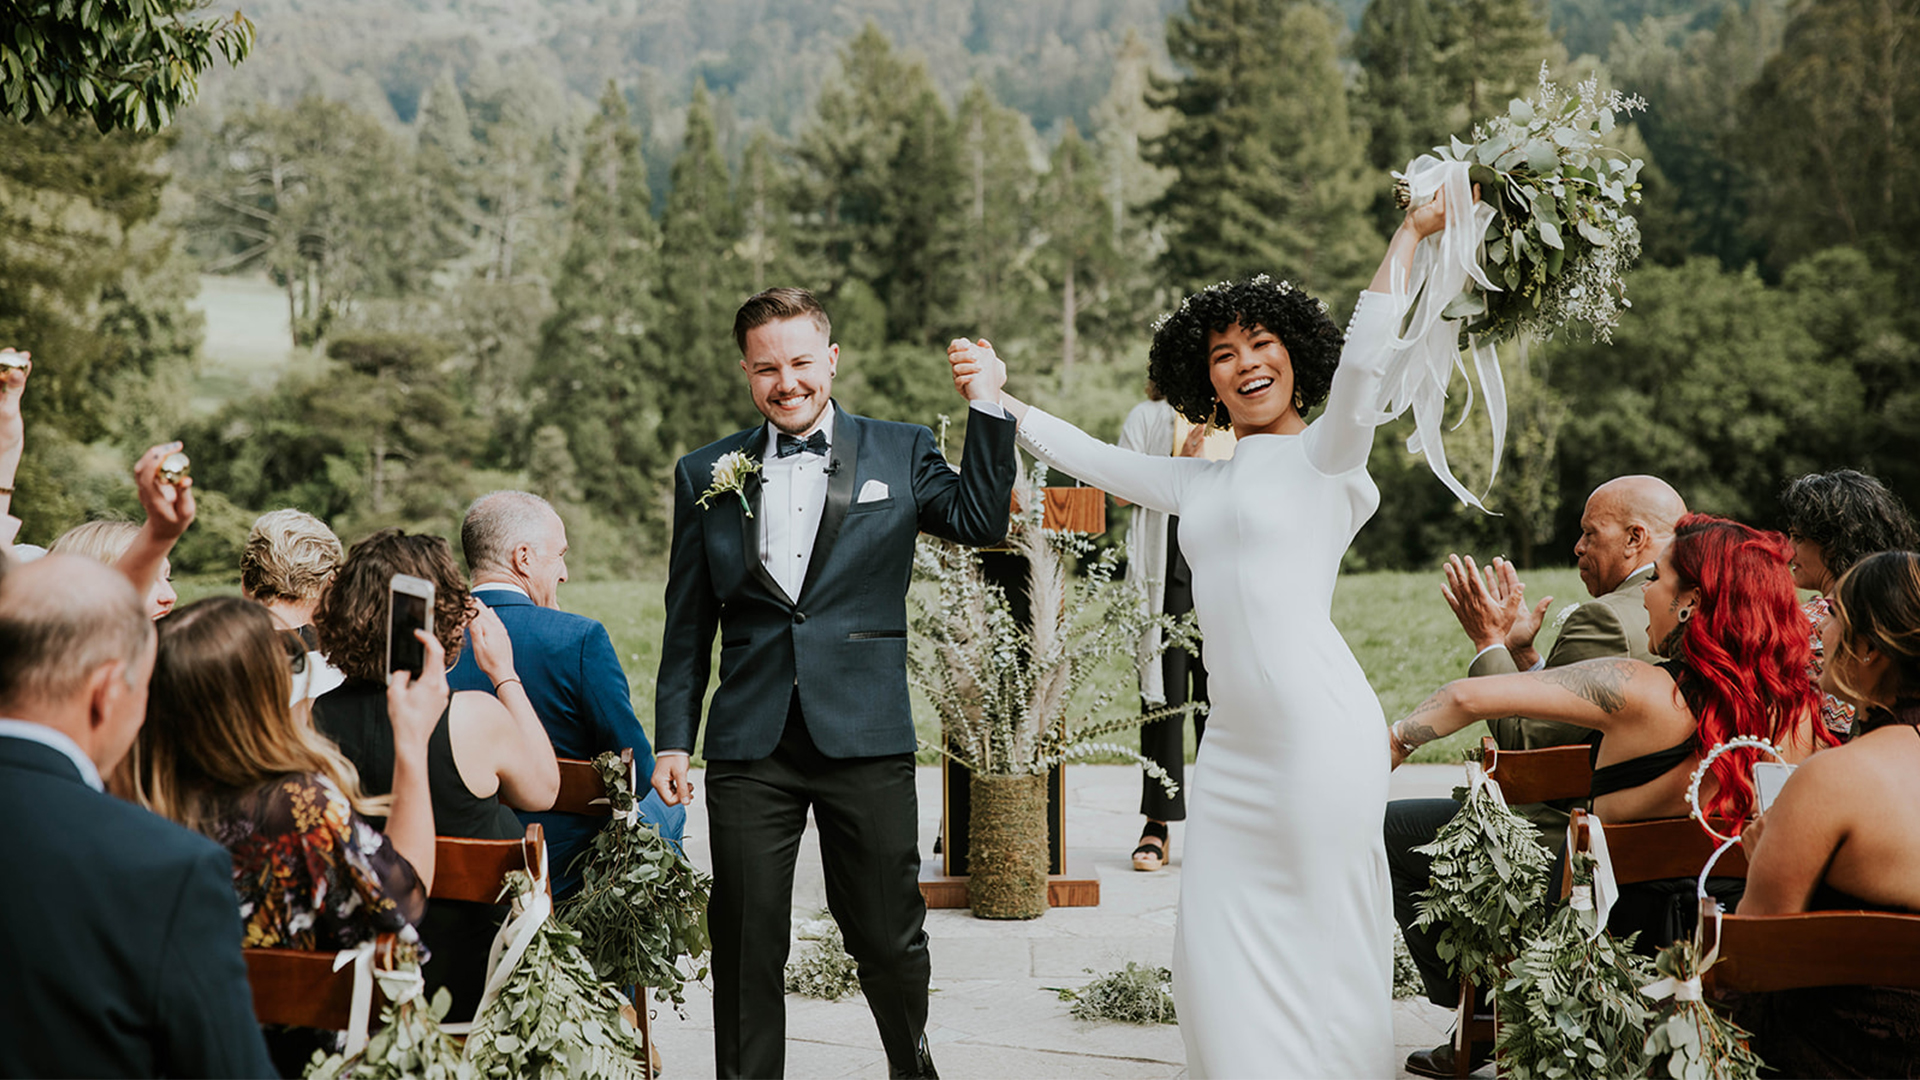 3 Tips To Choose The Best Wedding Photographer